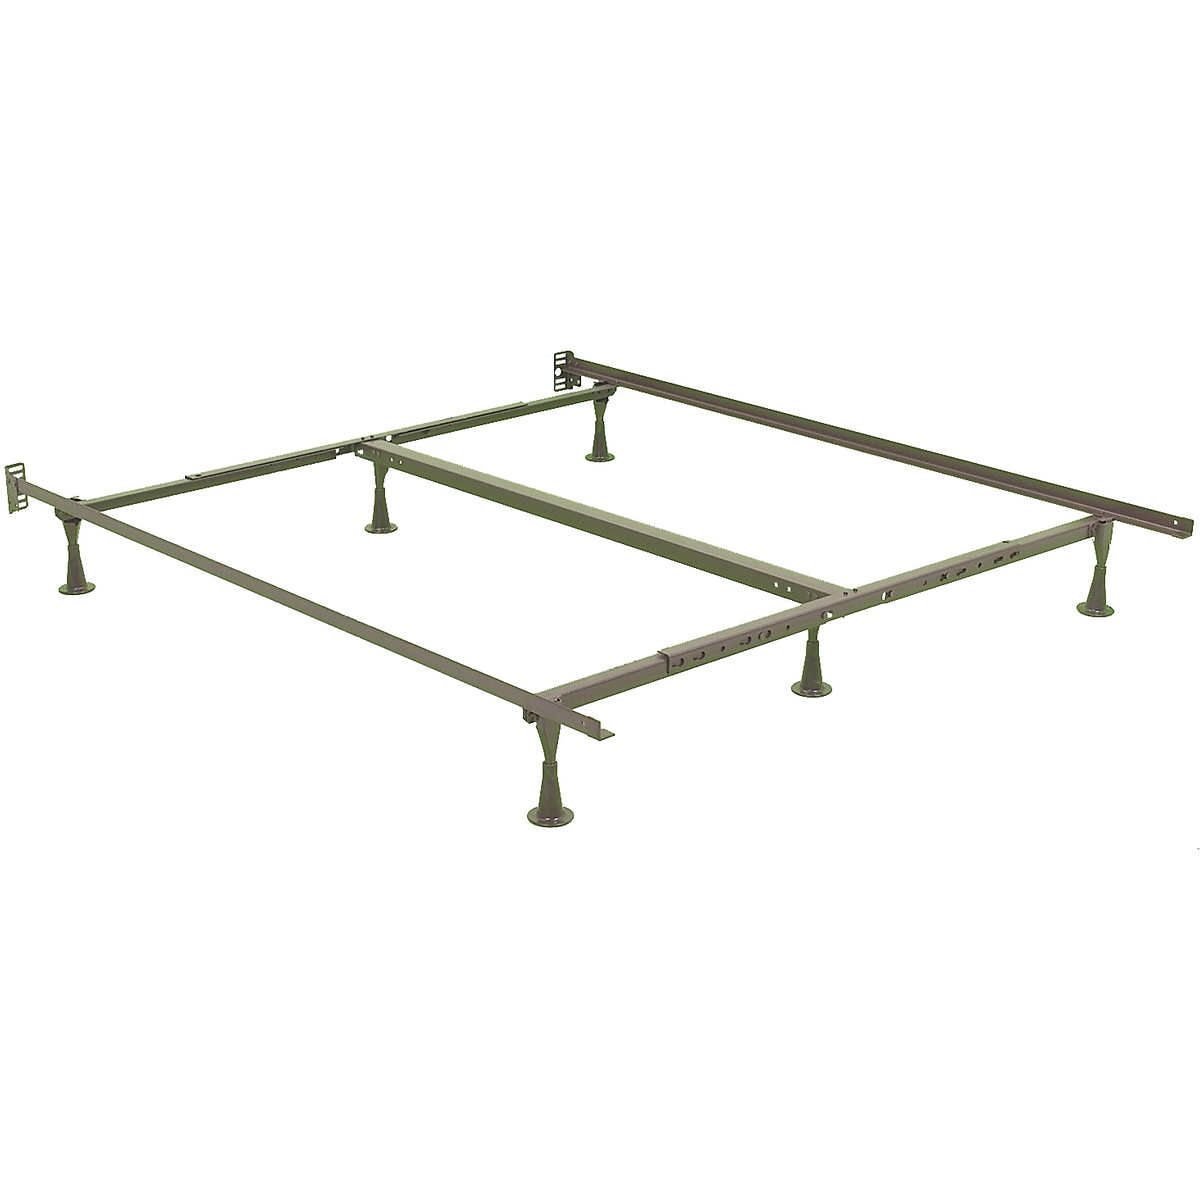 Metal Bed Frames king / cal king / queen metal bed frame